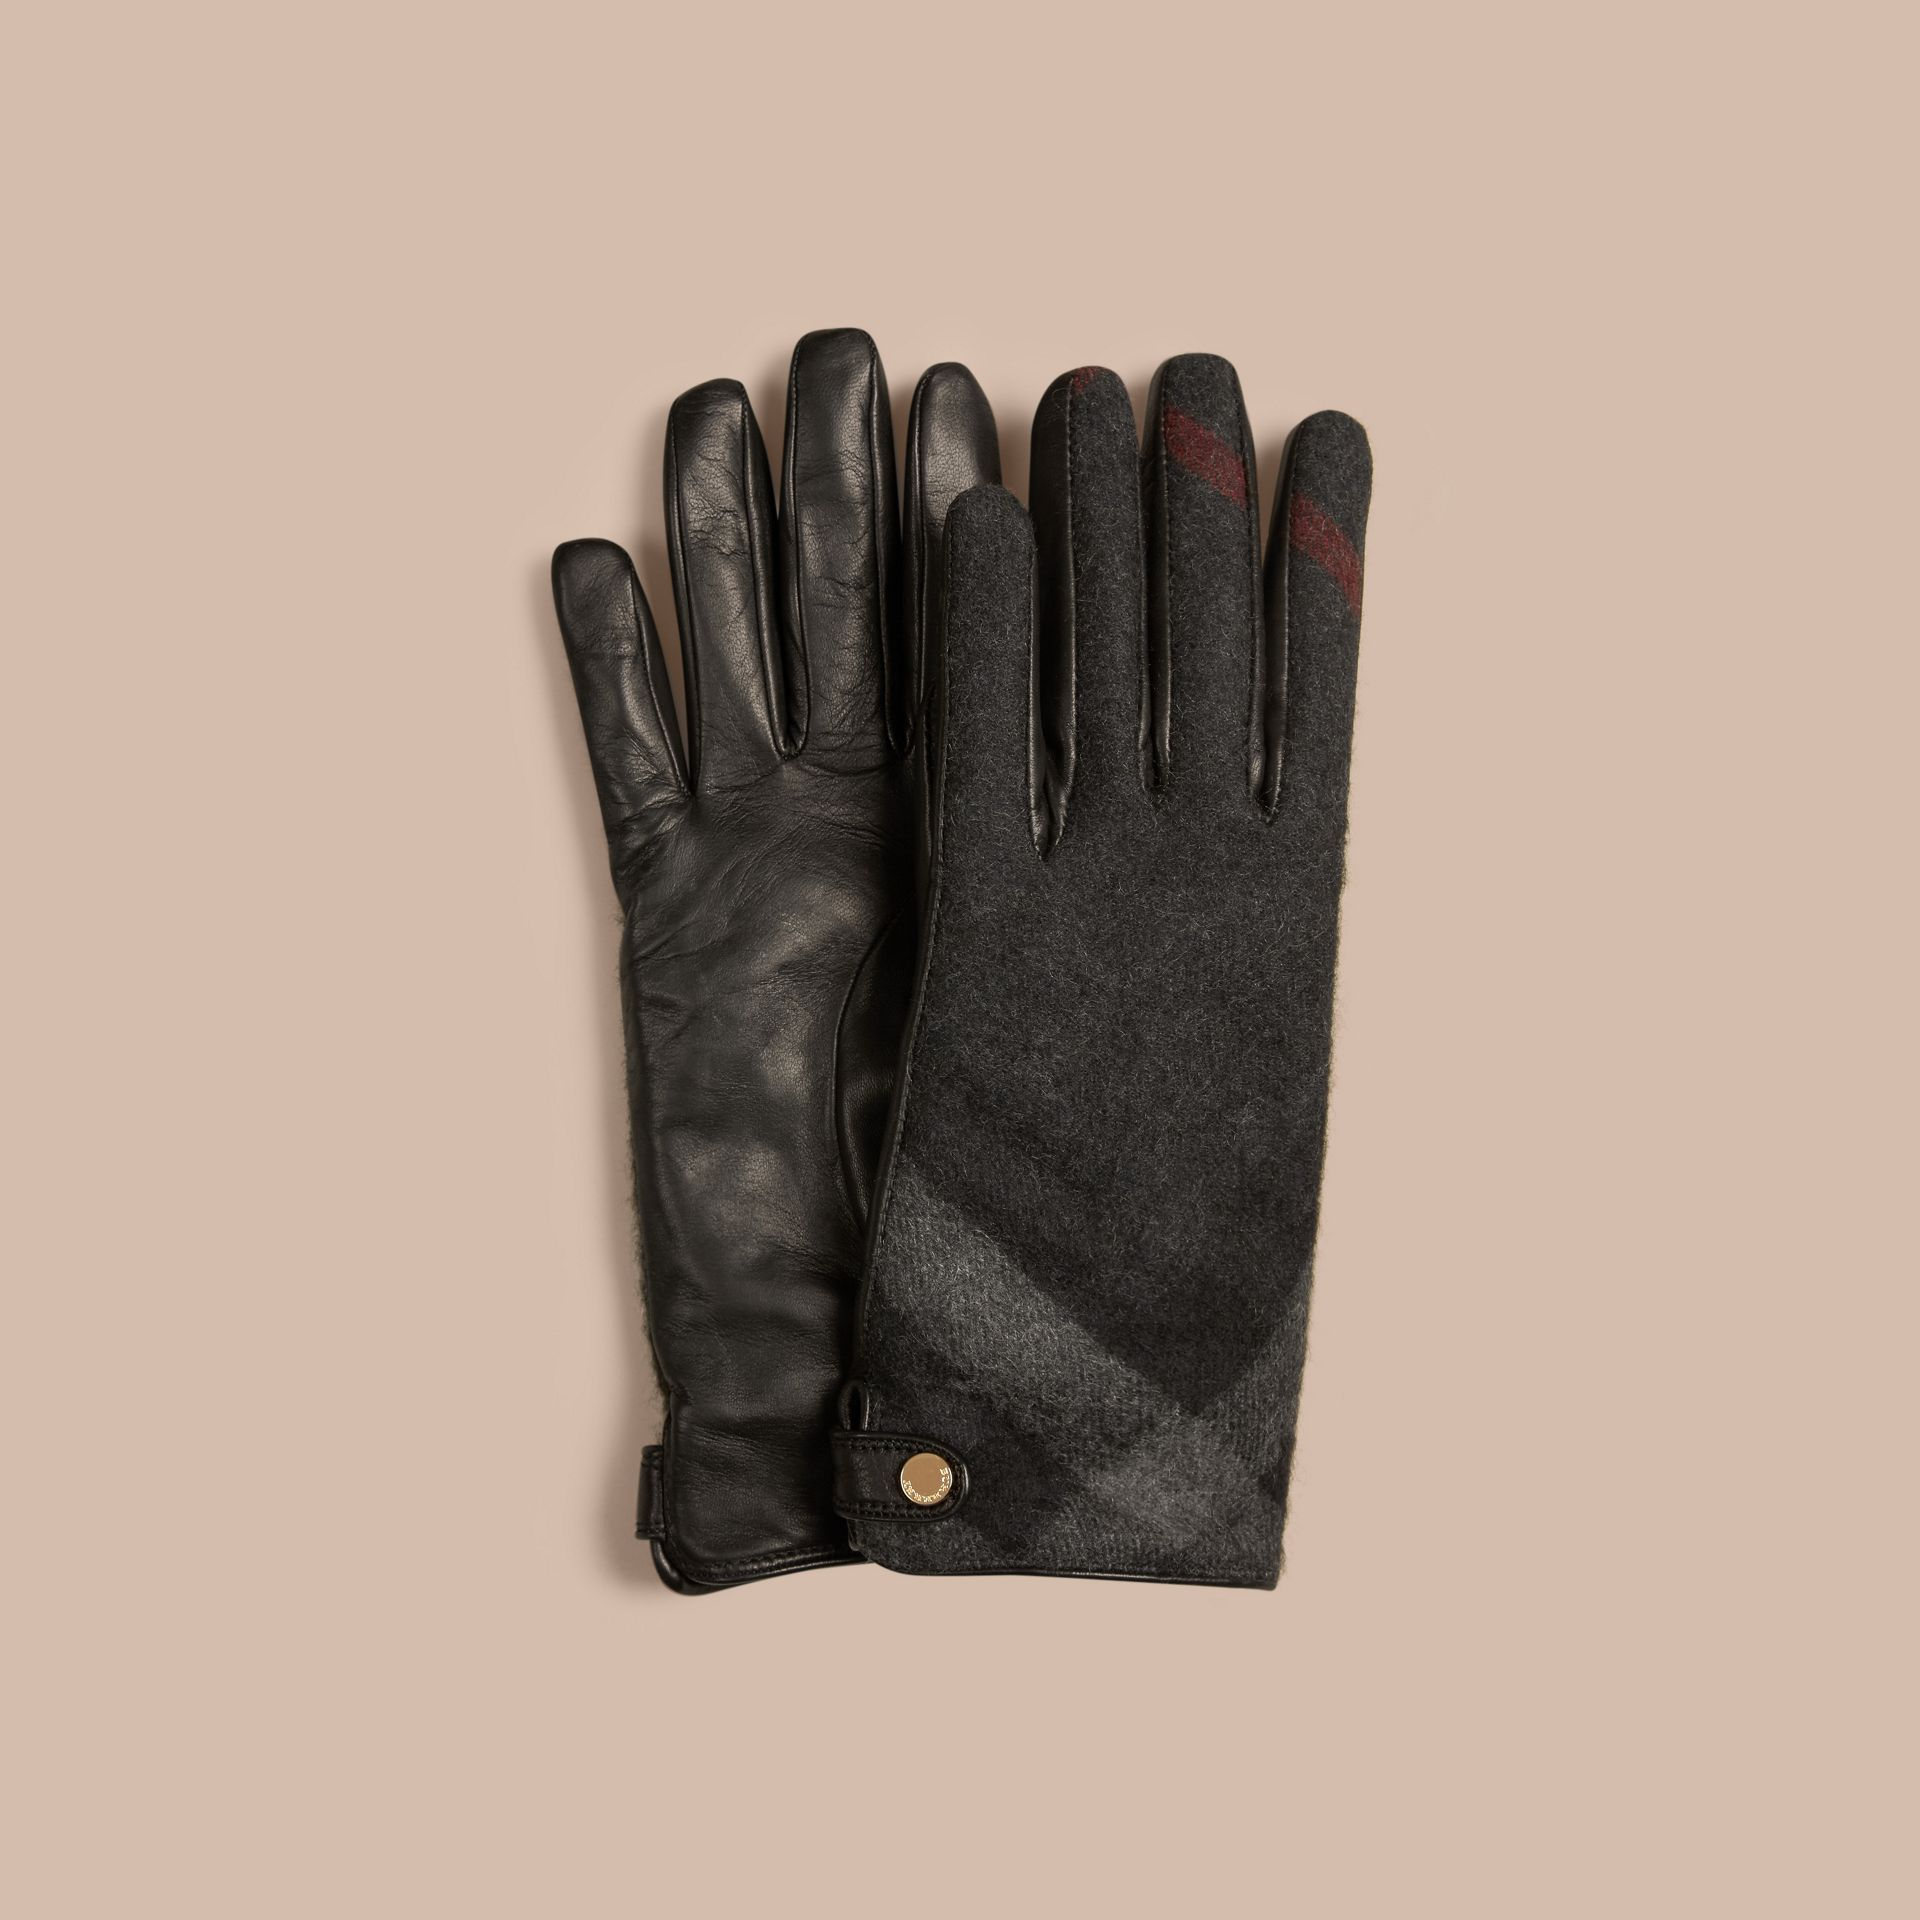 Leather and Check Cashmere Gloves in Charcoal - Women | Burberry - gallery image 1